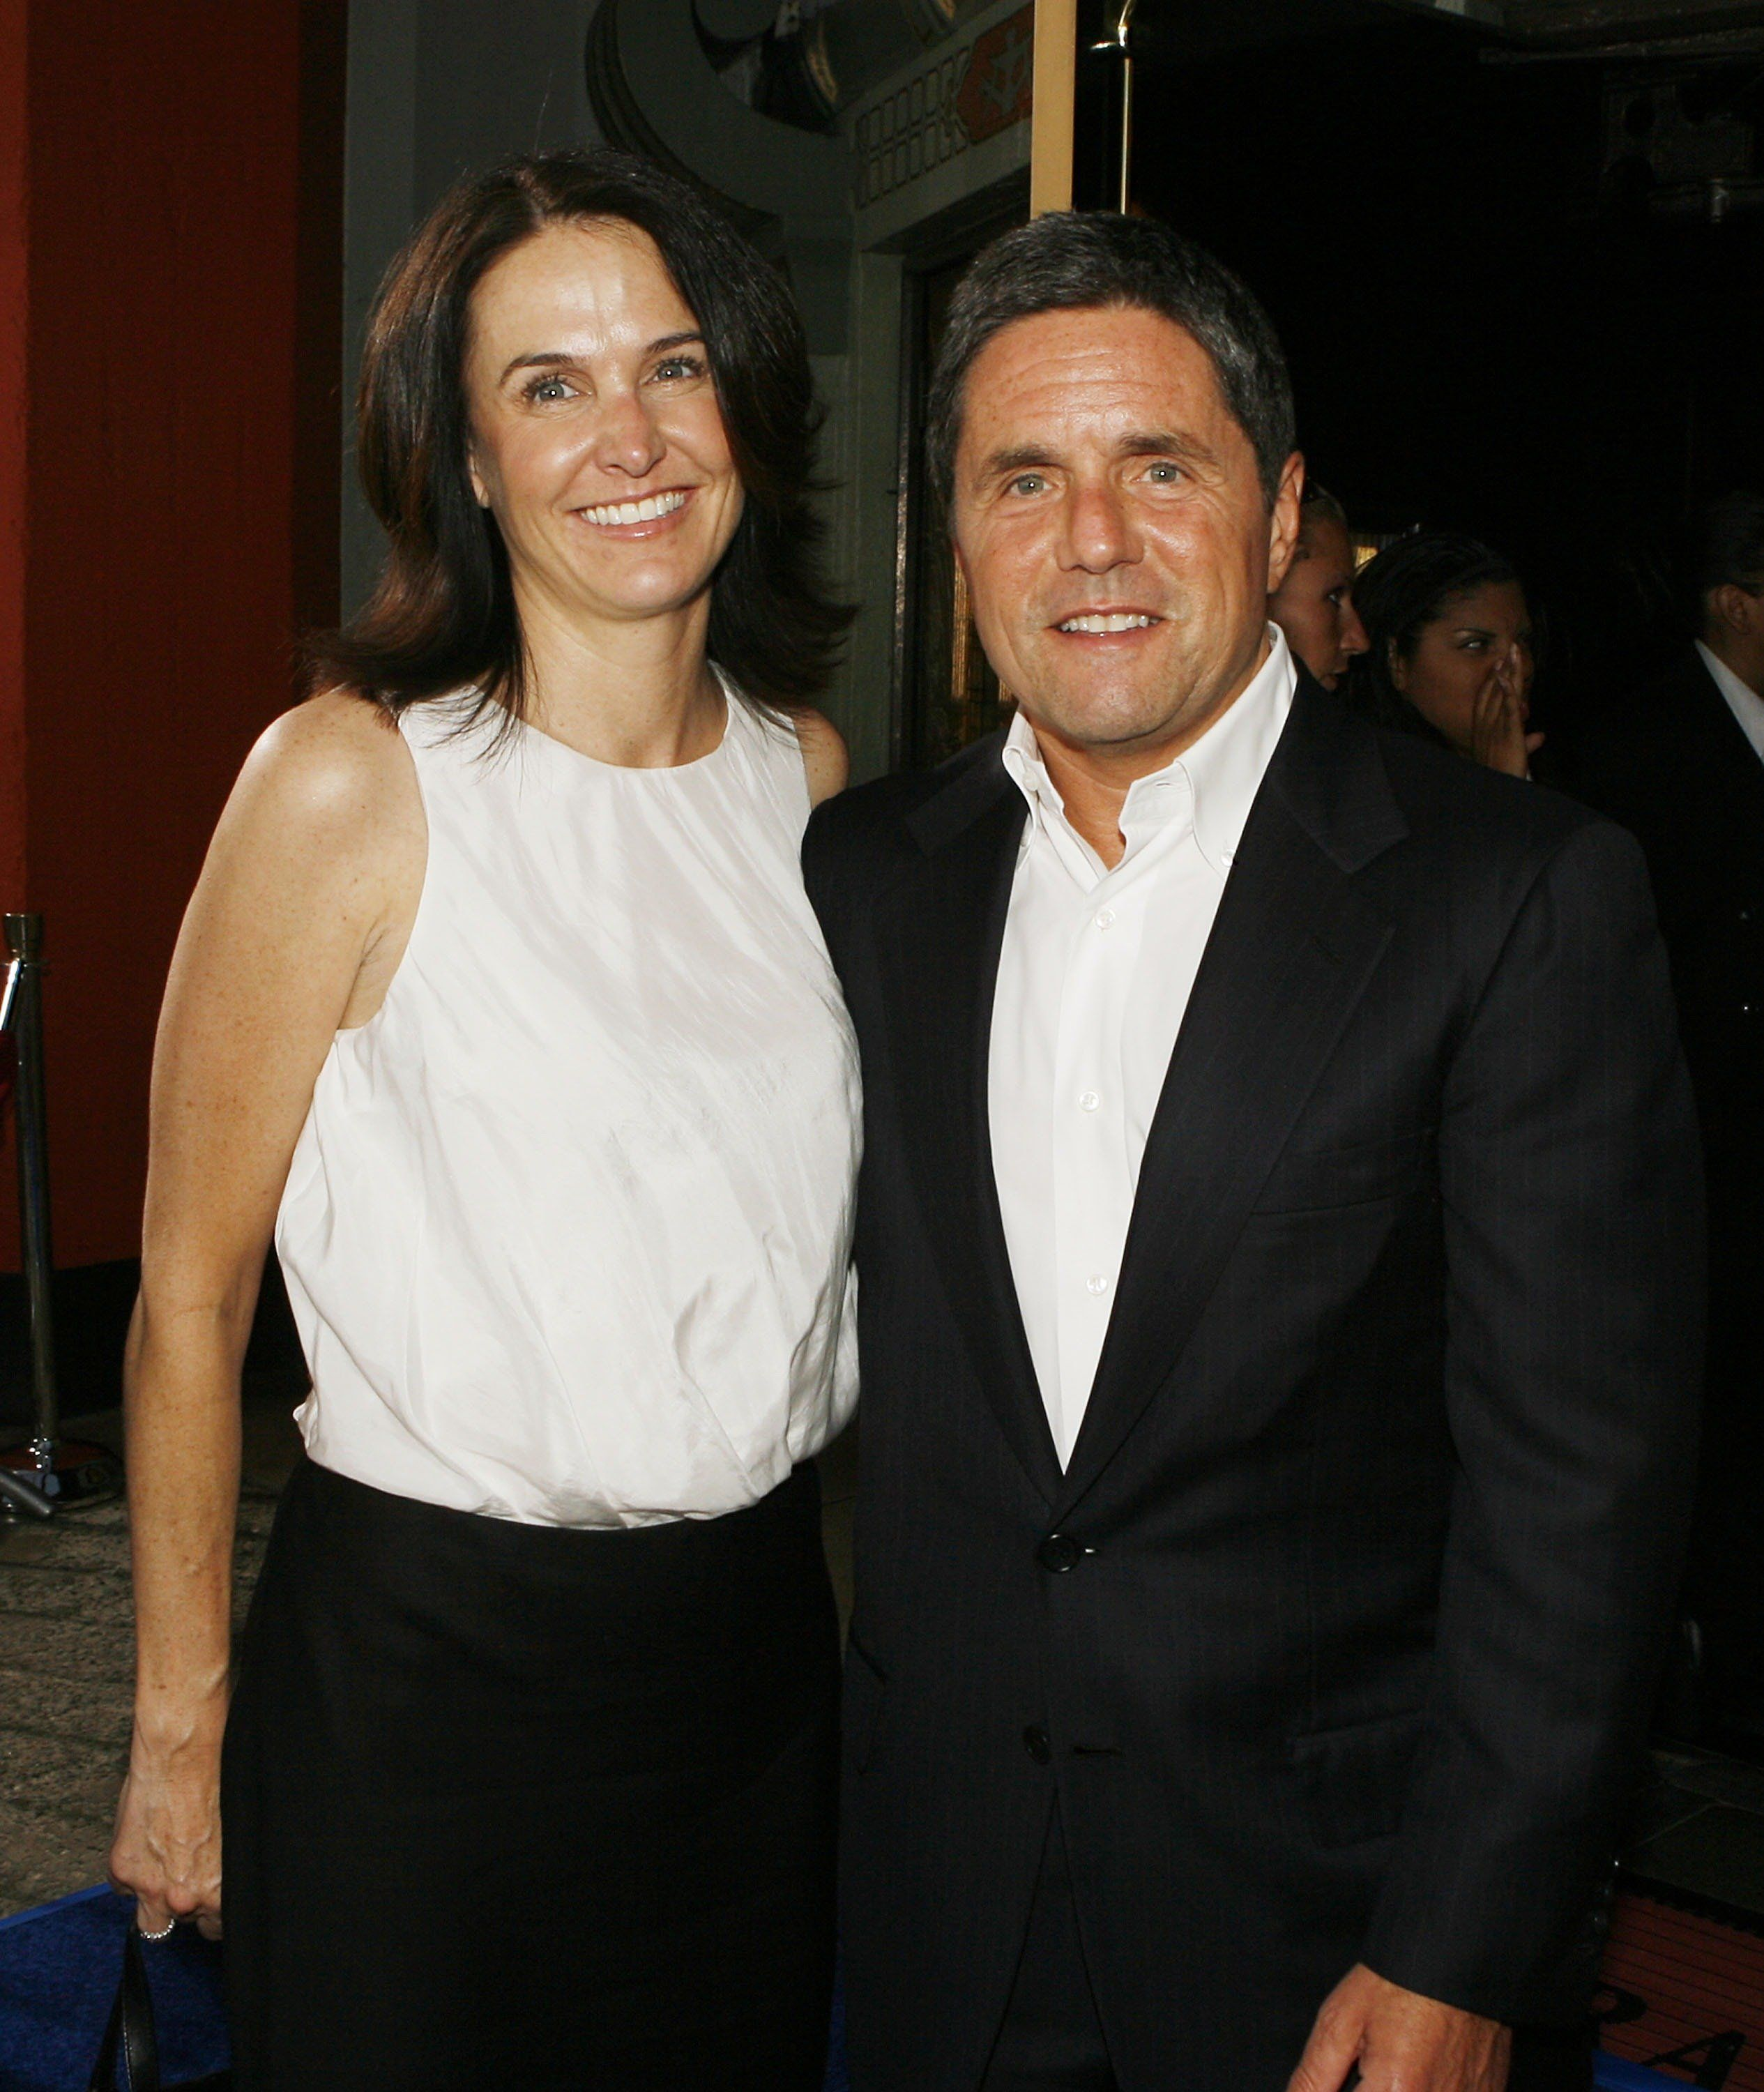 LOS ANGELES - JULY 26:  Exec. Prod. Jill Messick and Paramount's Brad Grey pose at the premiere of Paramount Picture's 'Hot Rod' at the Chinese Theater on July 26, 2007 in Los Angeles, California. (Photo by Kevin Winter/Getty Images)